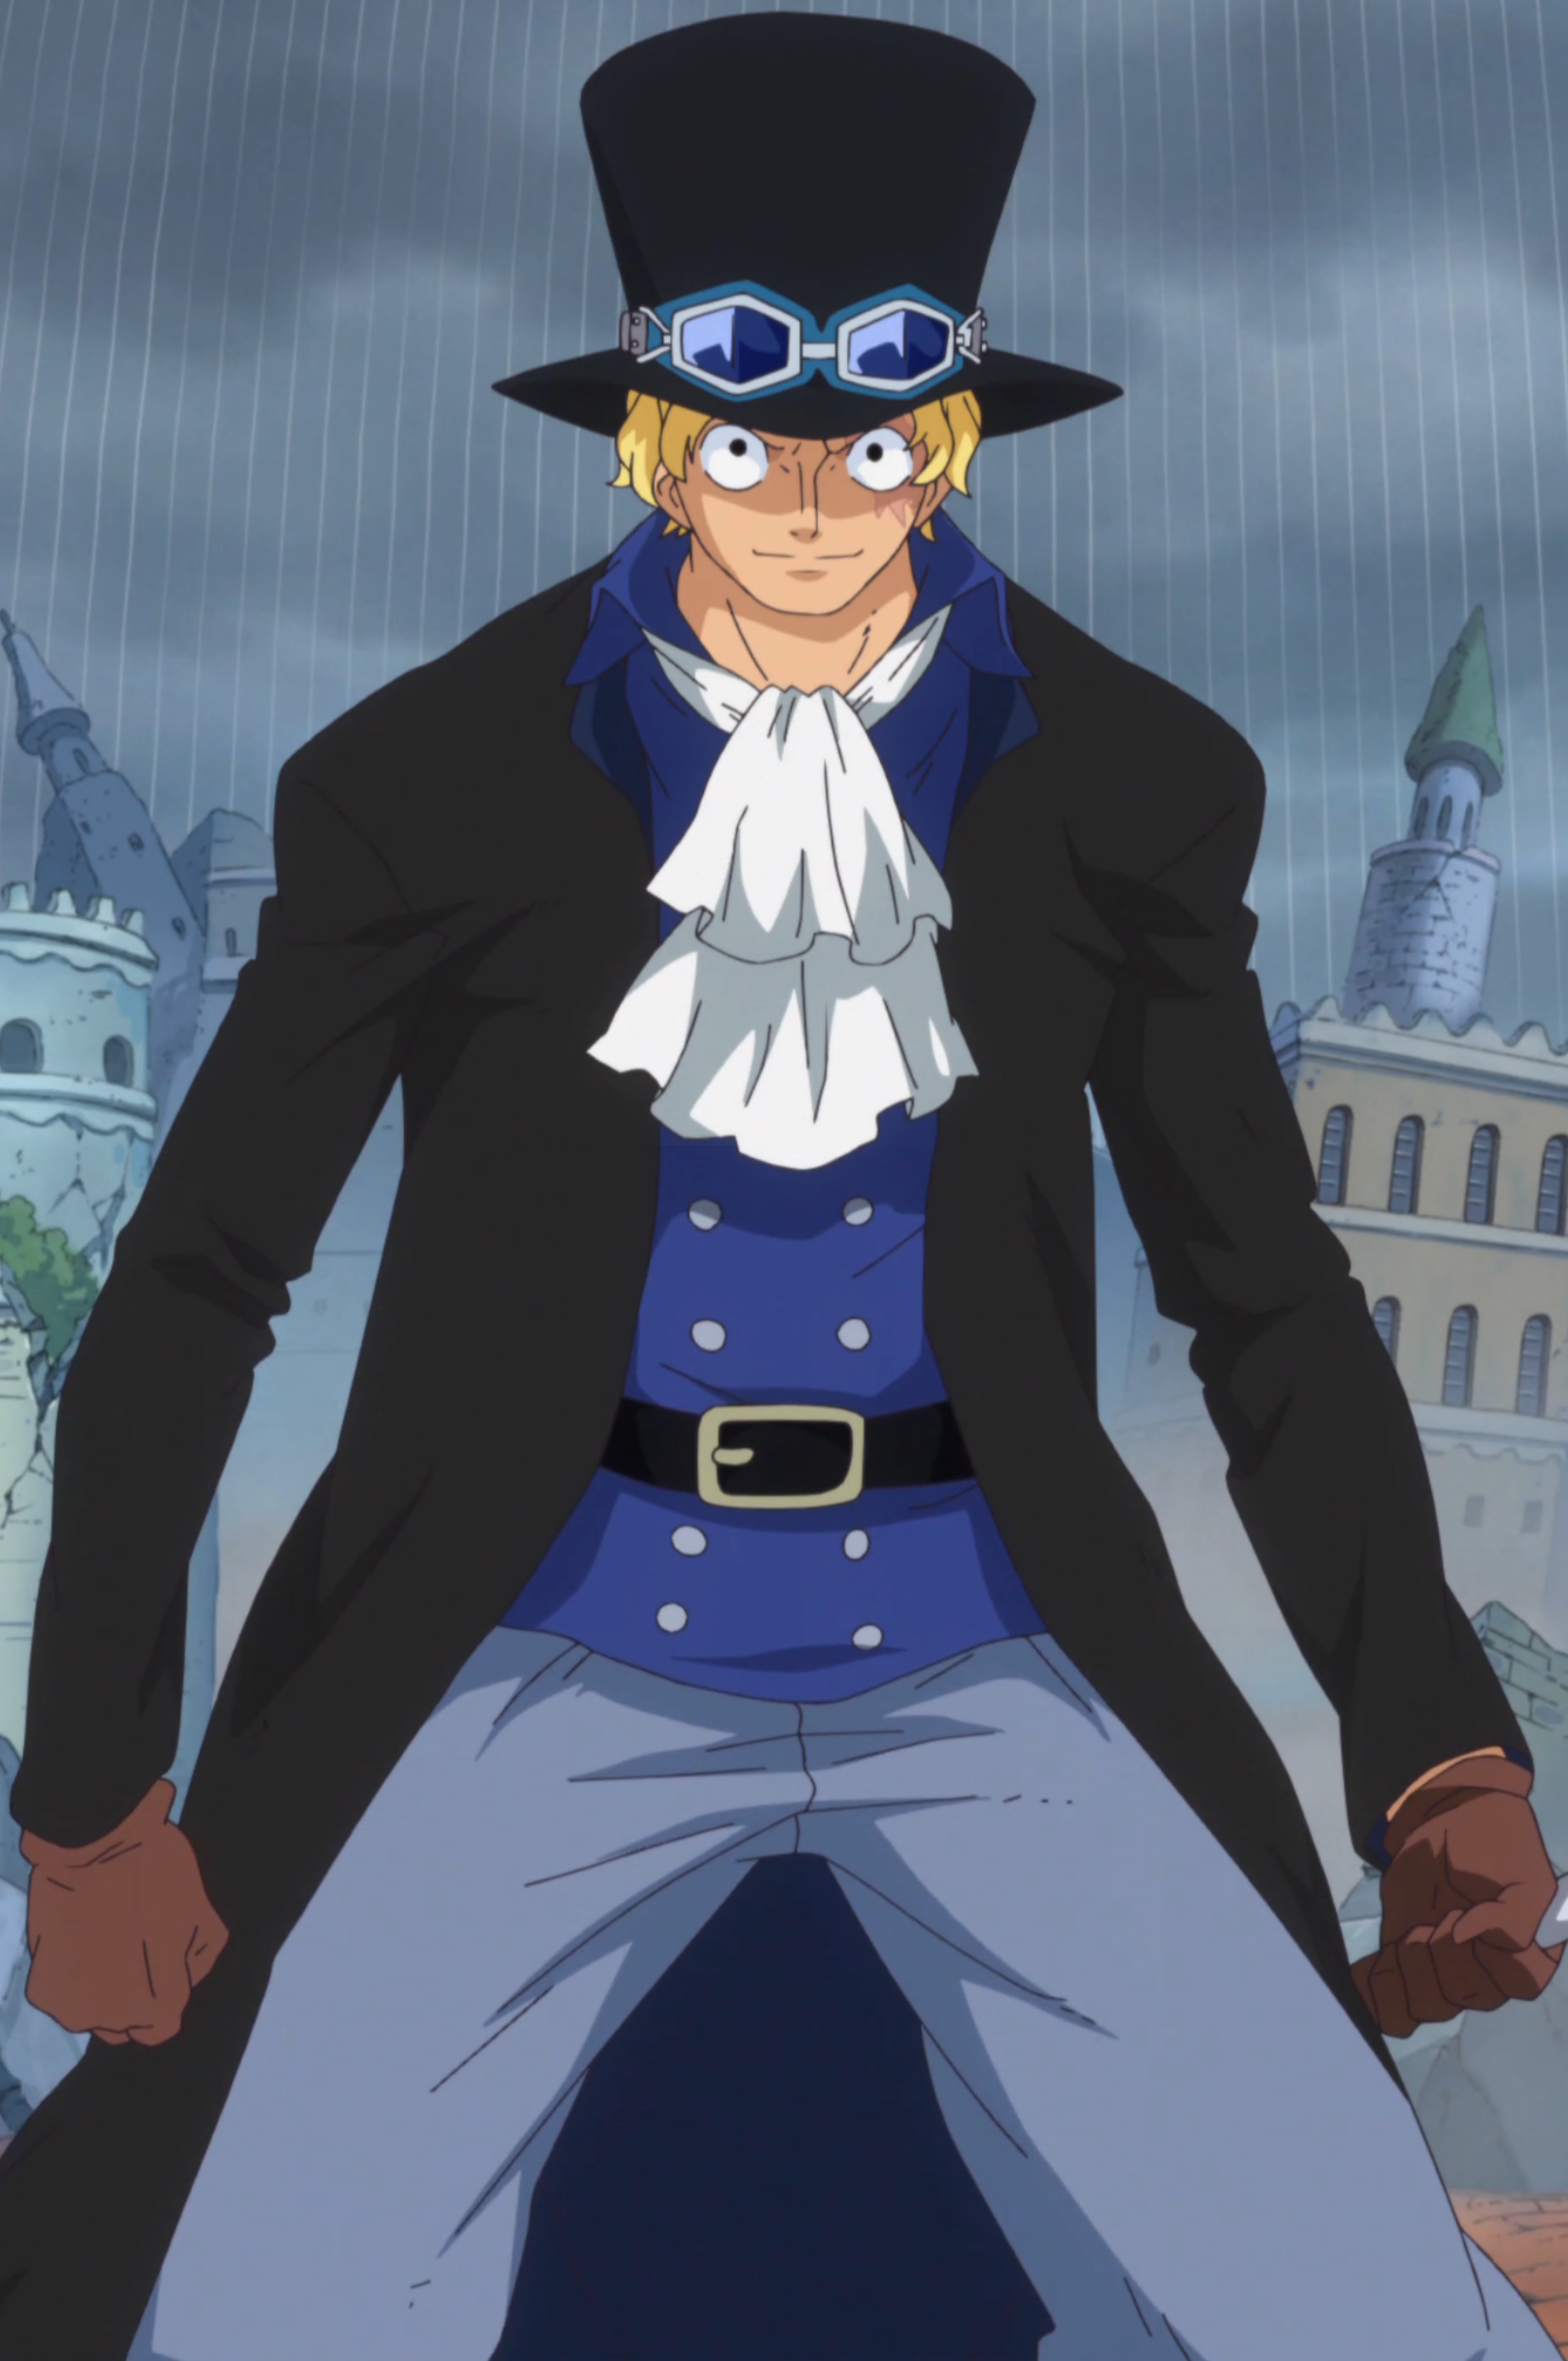 sabo one piece wiki italia fandom powered by wikia. Black Bedroom Furniture Sets. Home Design Ideas